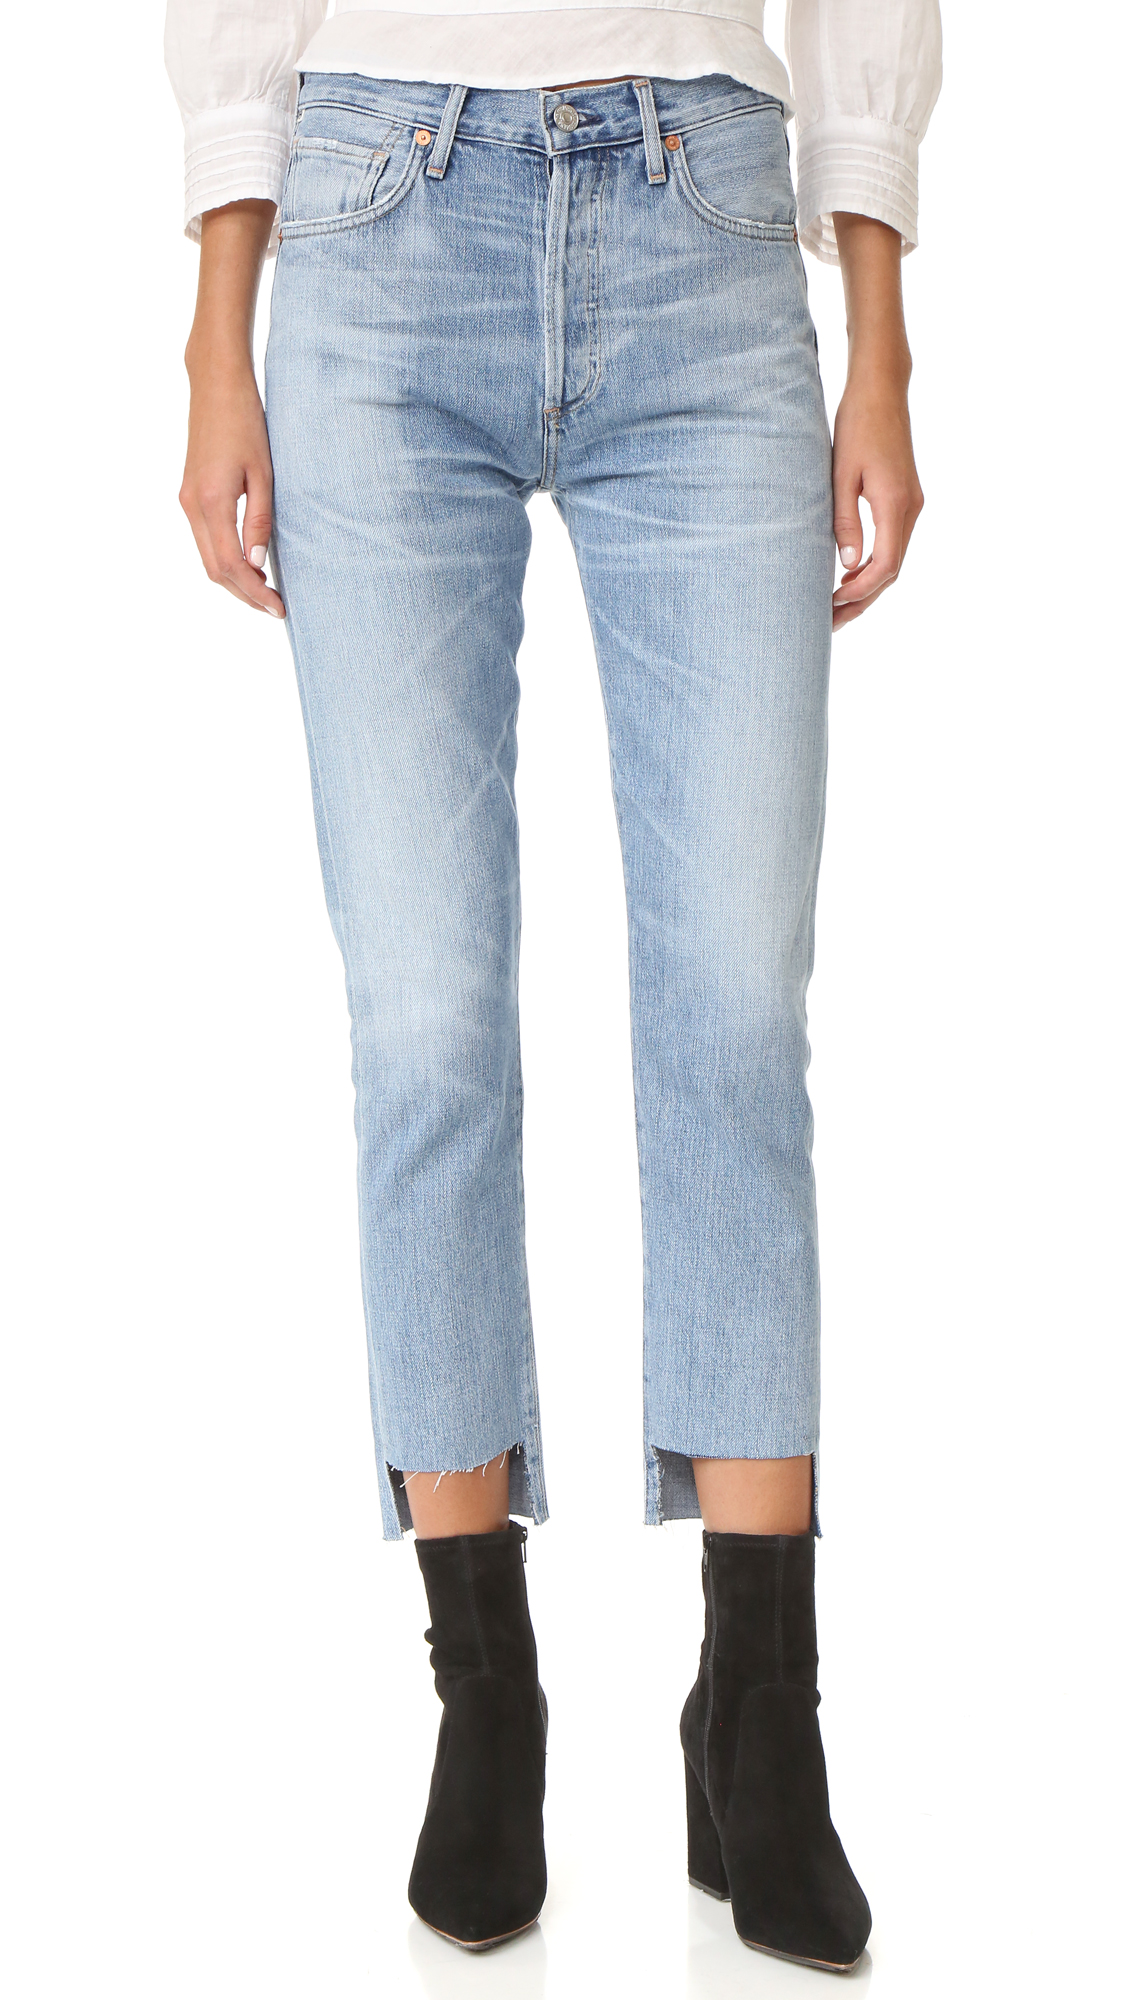 Laid back Citizens of Humanity jeans with whiskered wash and frayed edging. Raw high low hem. 5 pocket styling. Button fly. Fabric: Denim. 77% cotton/23% rayon. Wash cold. Made in the USA. Measurements Rise: 11in / 28cm Inseam: 28.25in / 72